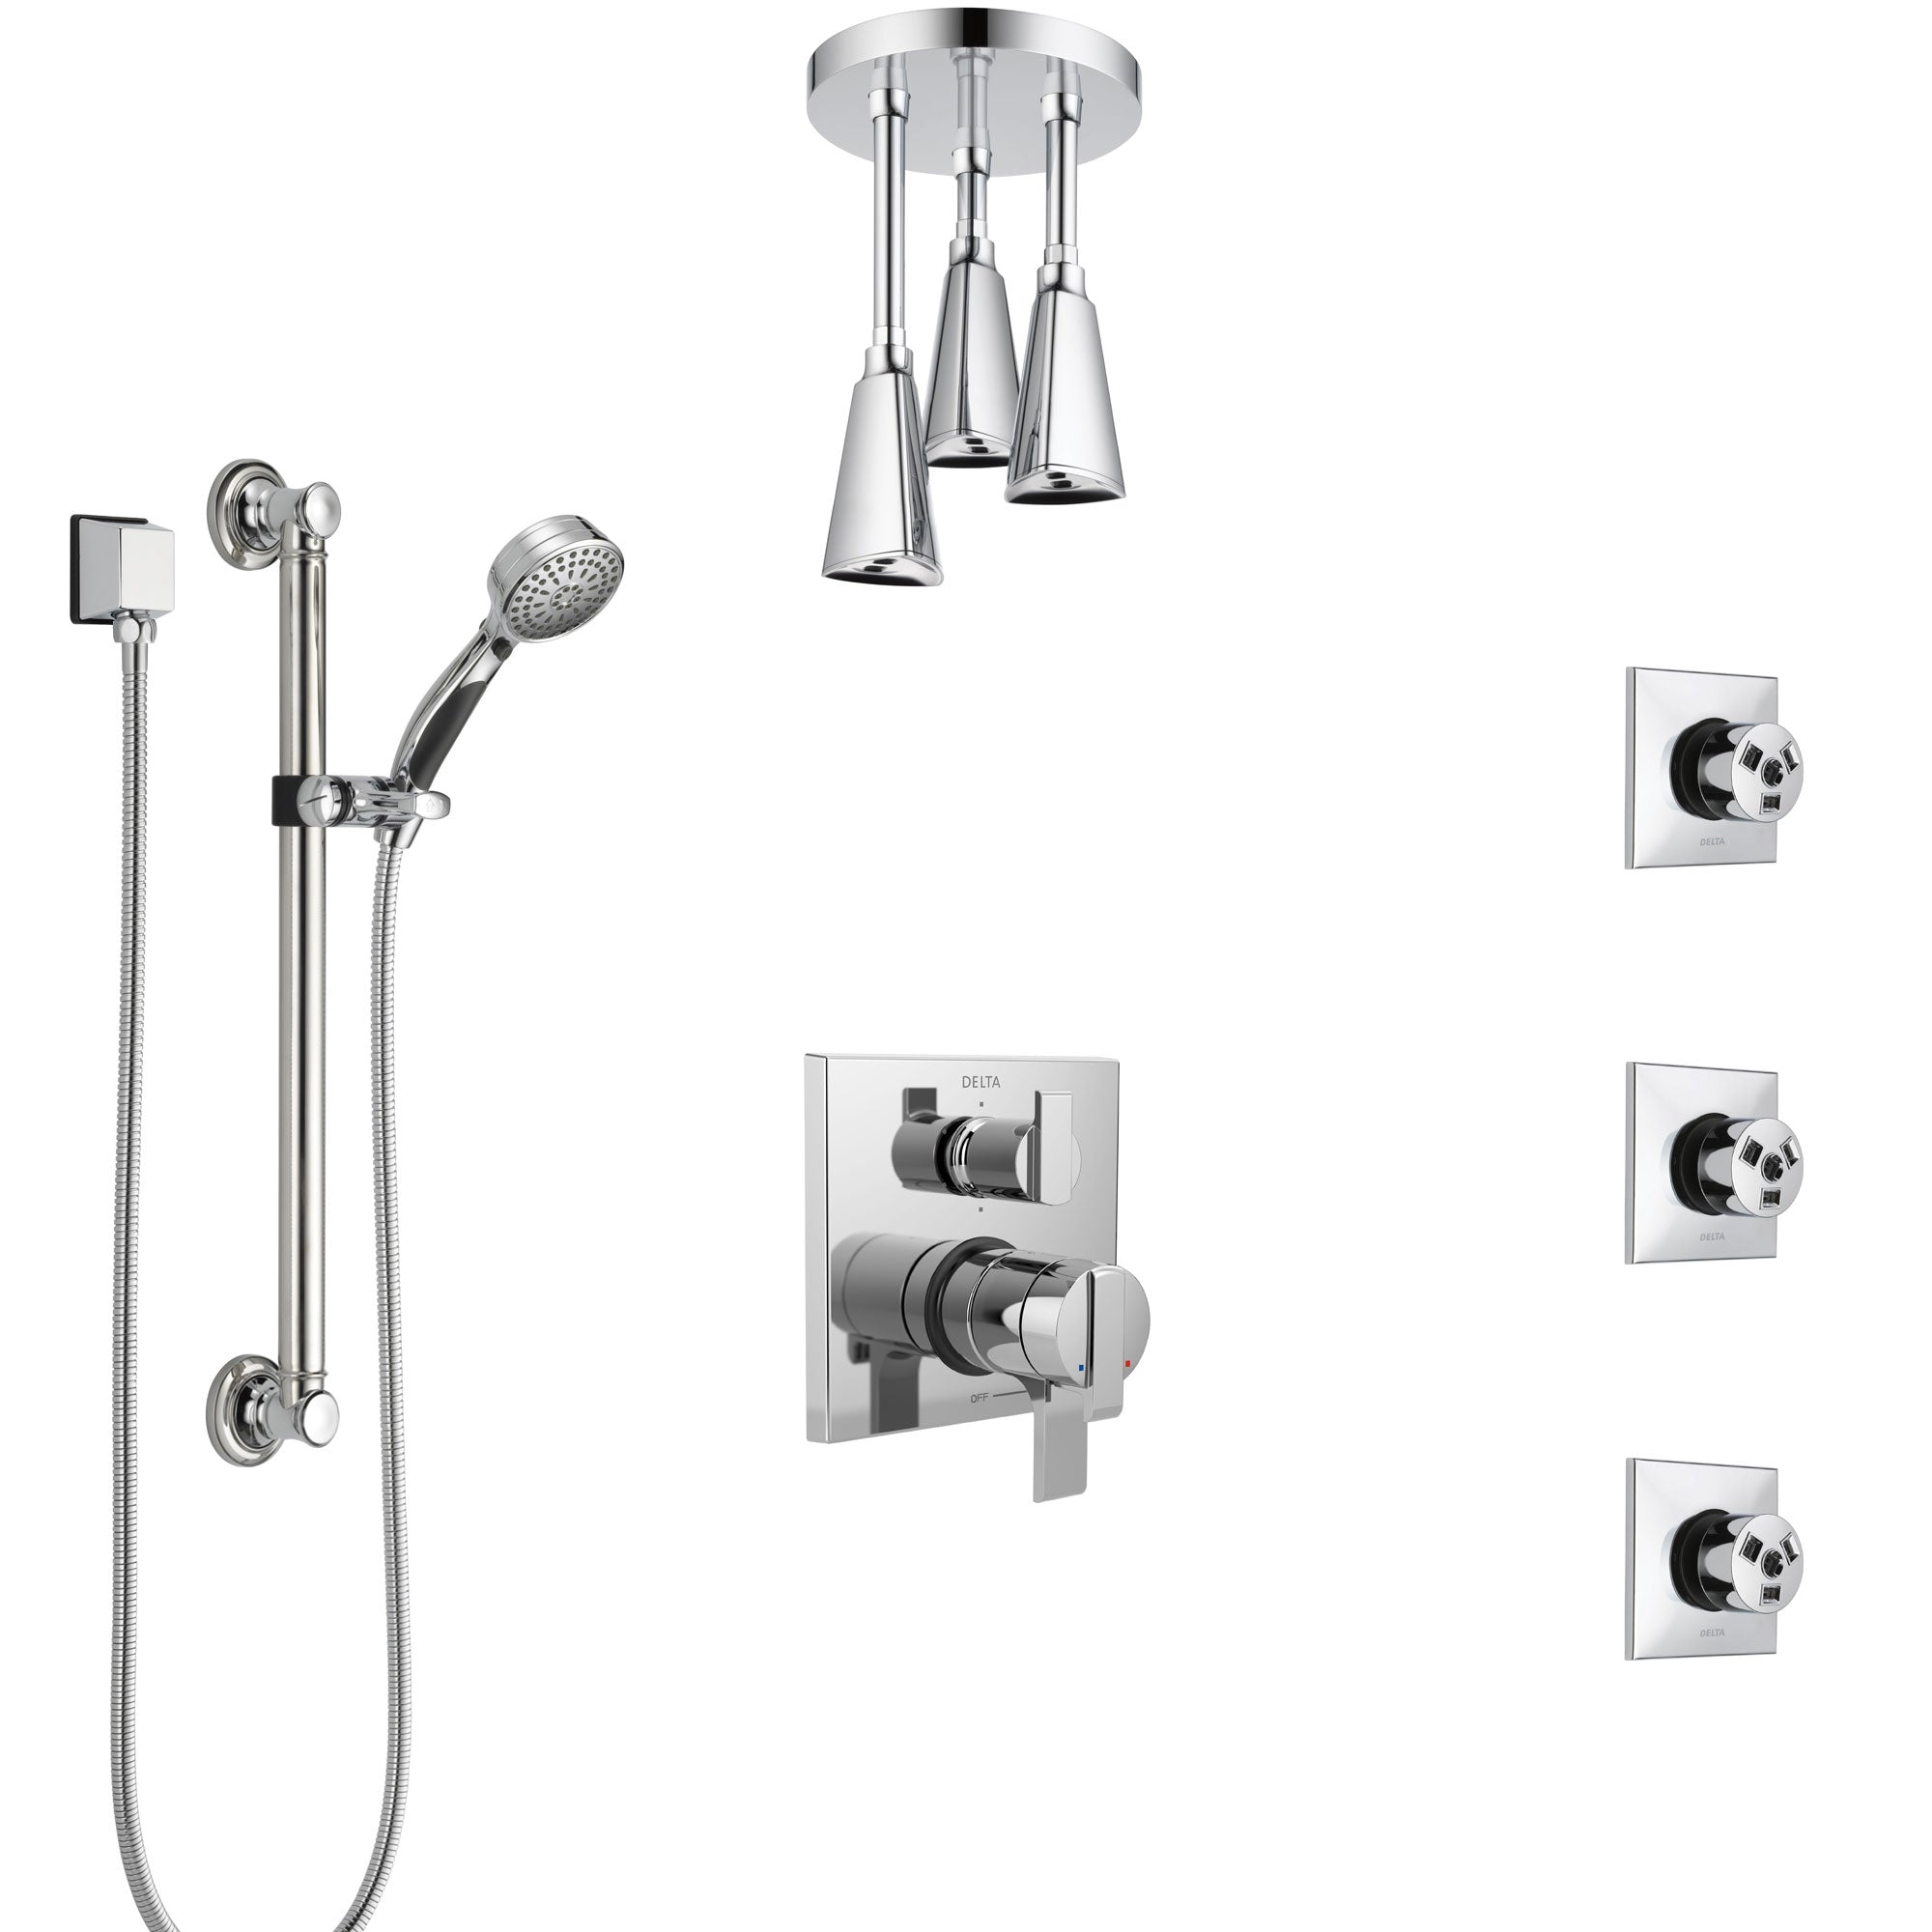 Delta Ara Chrome Shower System with Dual Control Handle, Integrated Diverter, Ceiling Showerhead, 3 Body Sprays, and Grab Bar Hand Shower SS279675